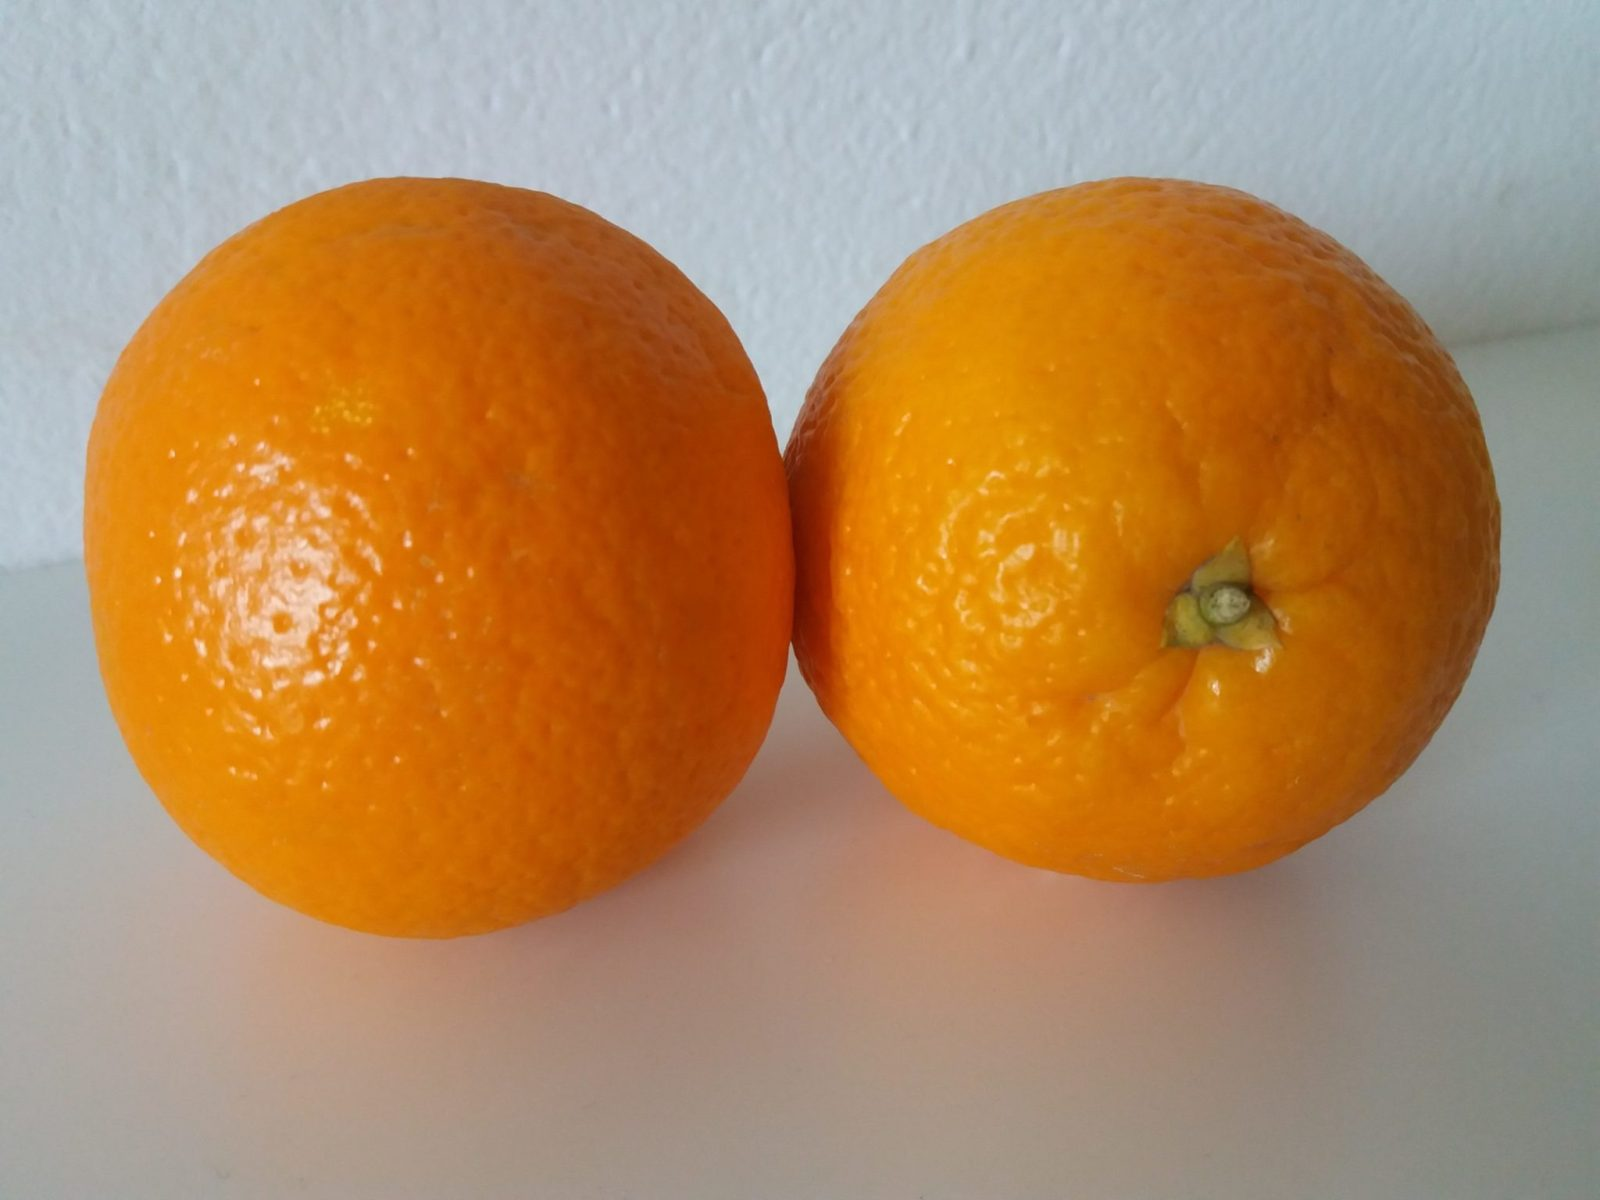 Oranges for vitamine C during coronavirus